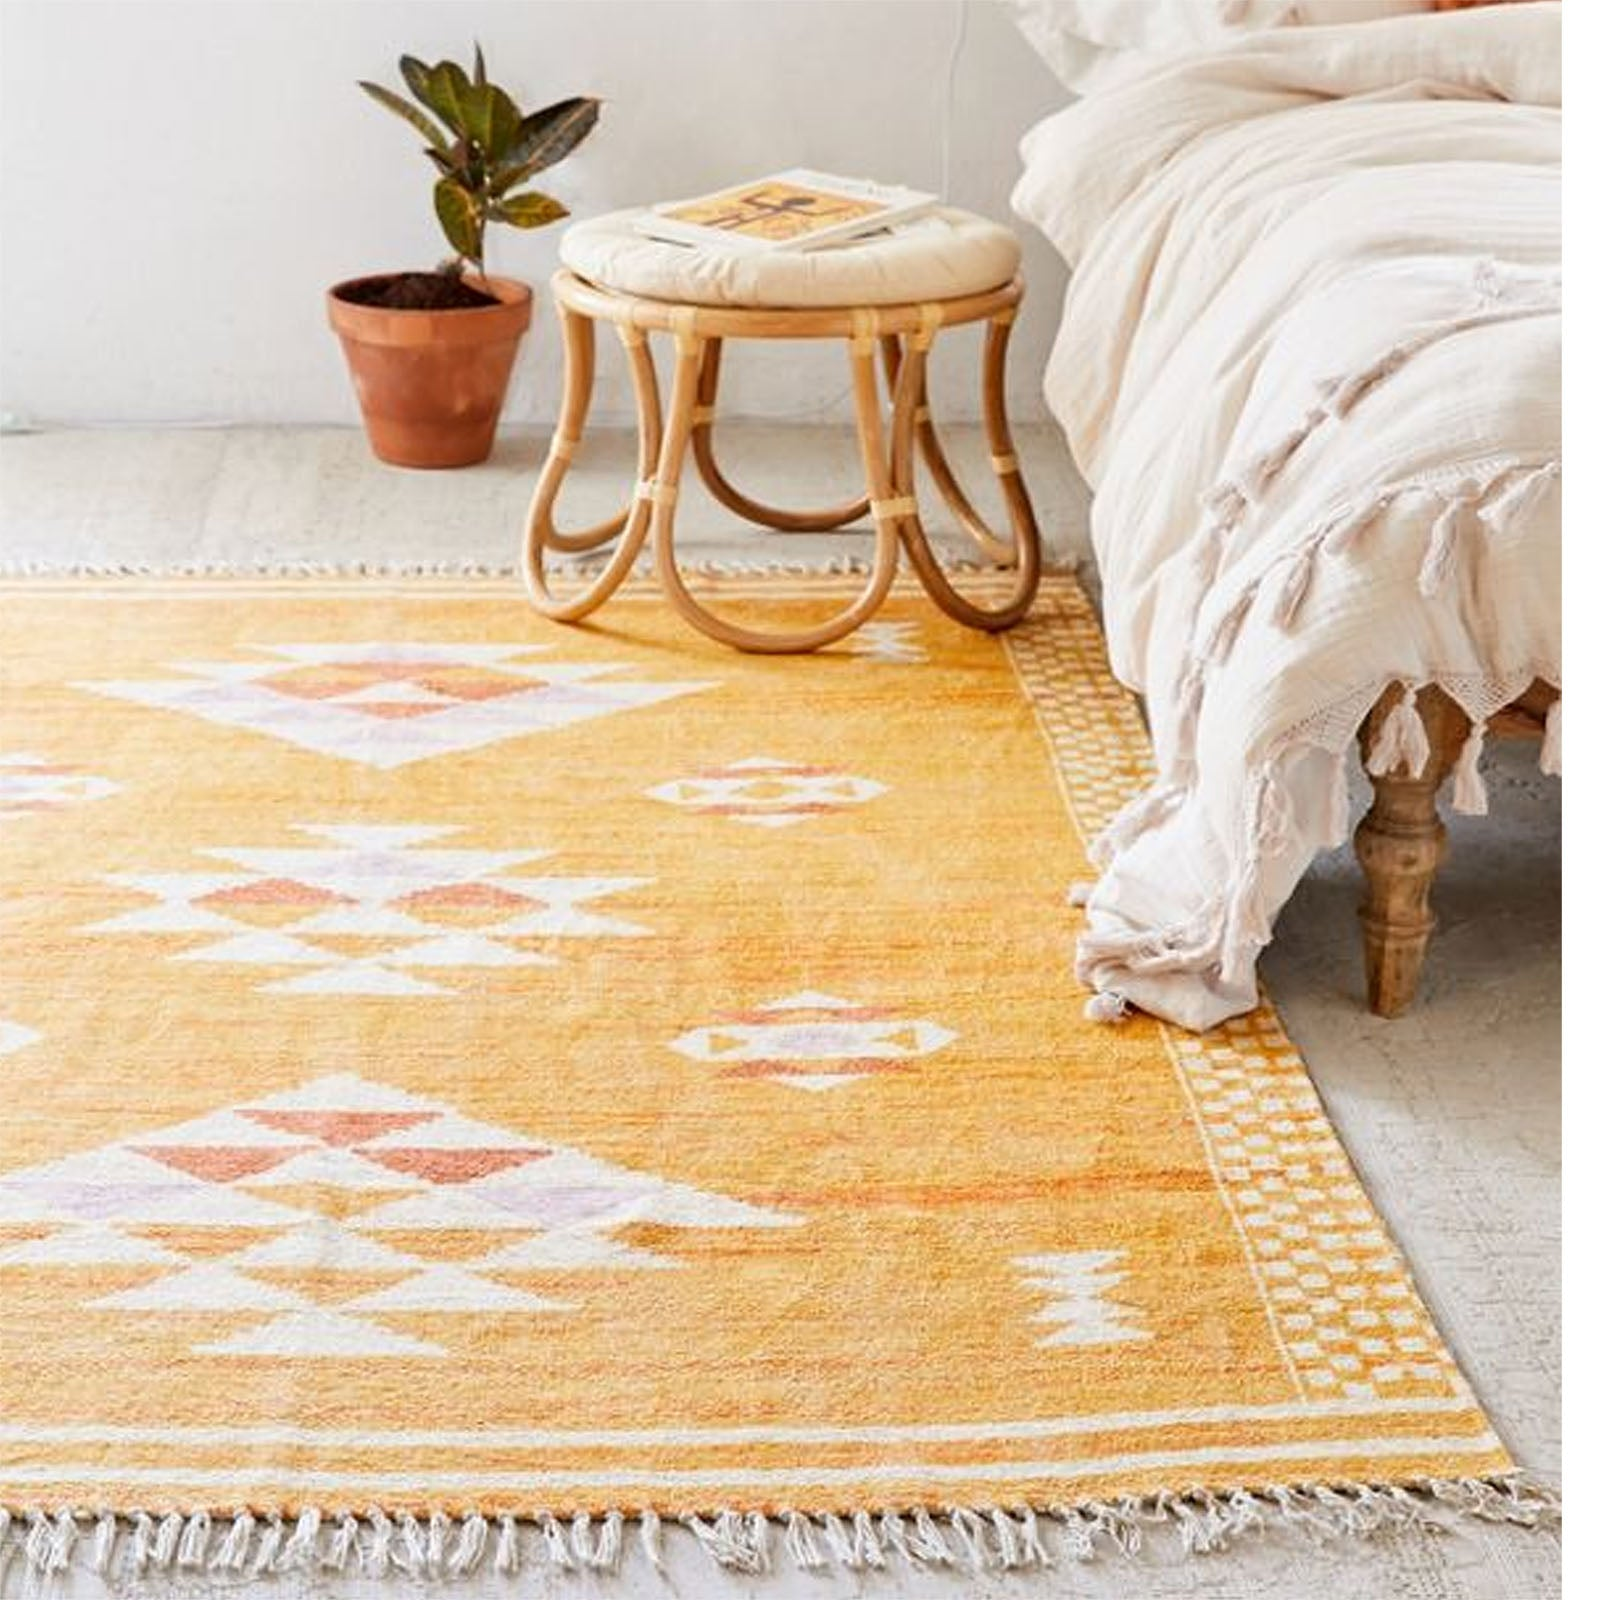 90x130  handmade  Rug JH-2705-S -  90x130 سجادة يدوية - Shop Online Furniture and Home Decor Store in Dubai, UAE at ebarza